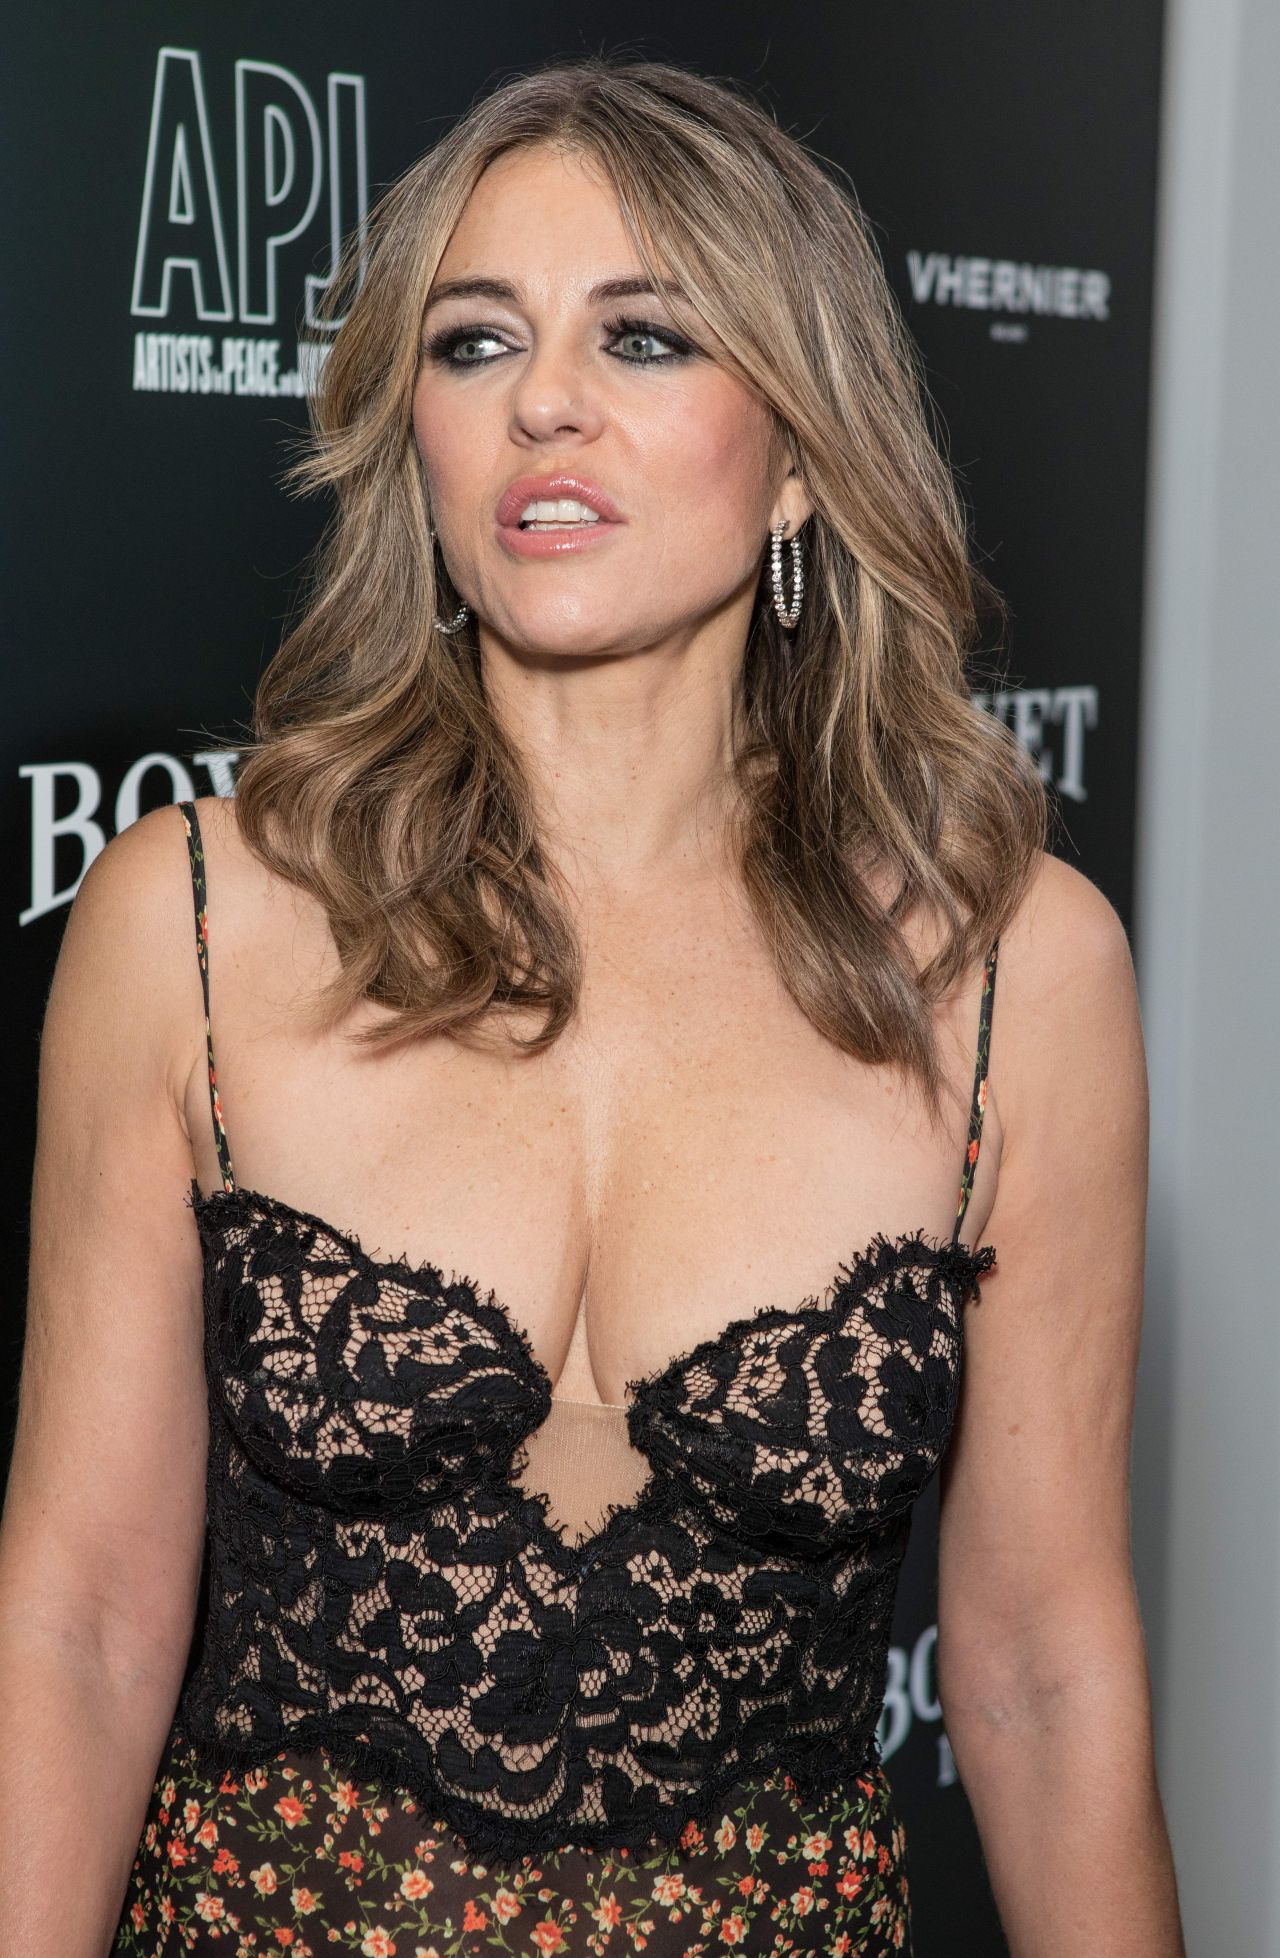 Young Elizabeth Hurley  nudes (63 pics), YouTube, cleavage